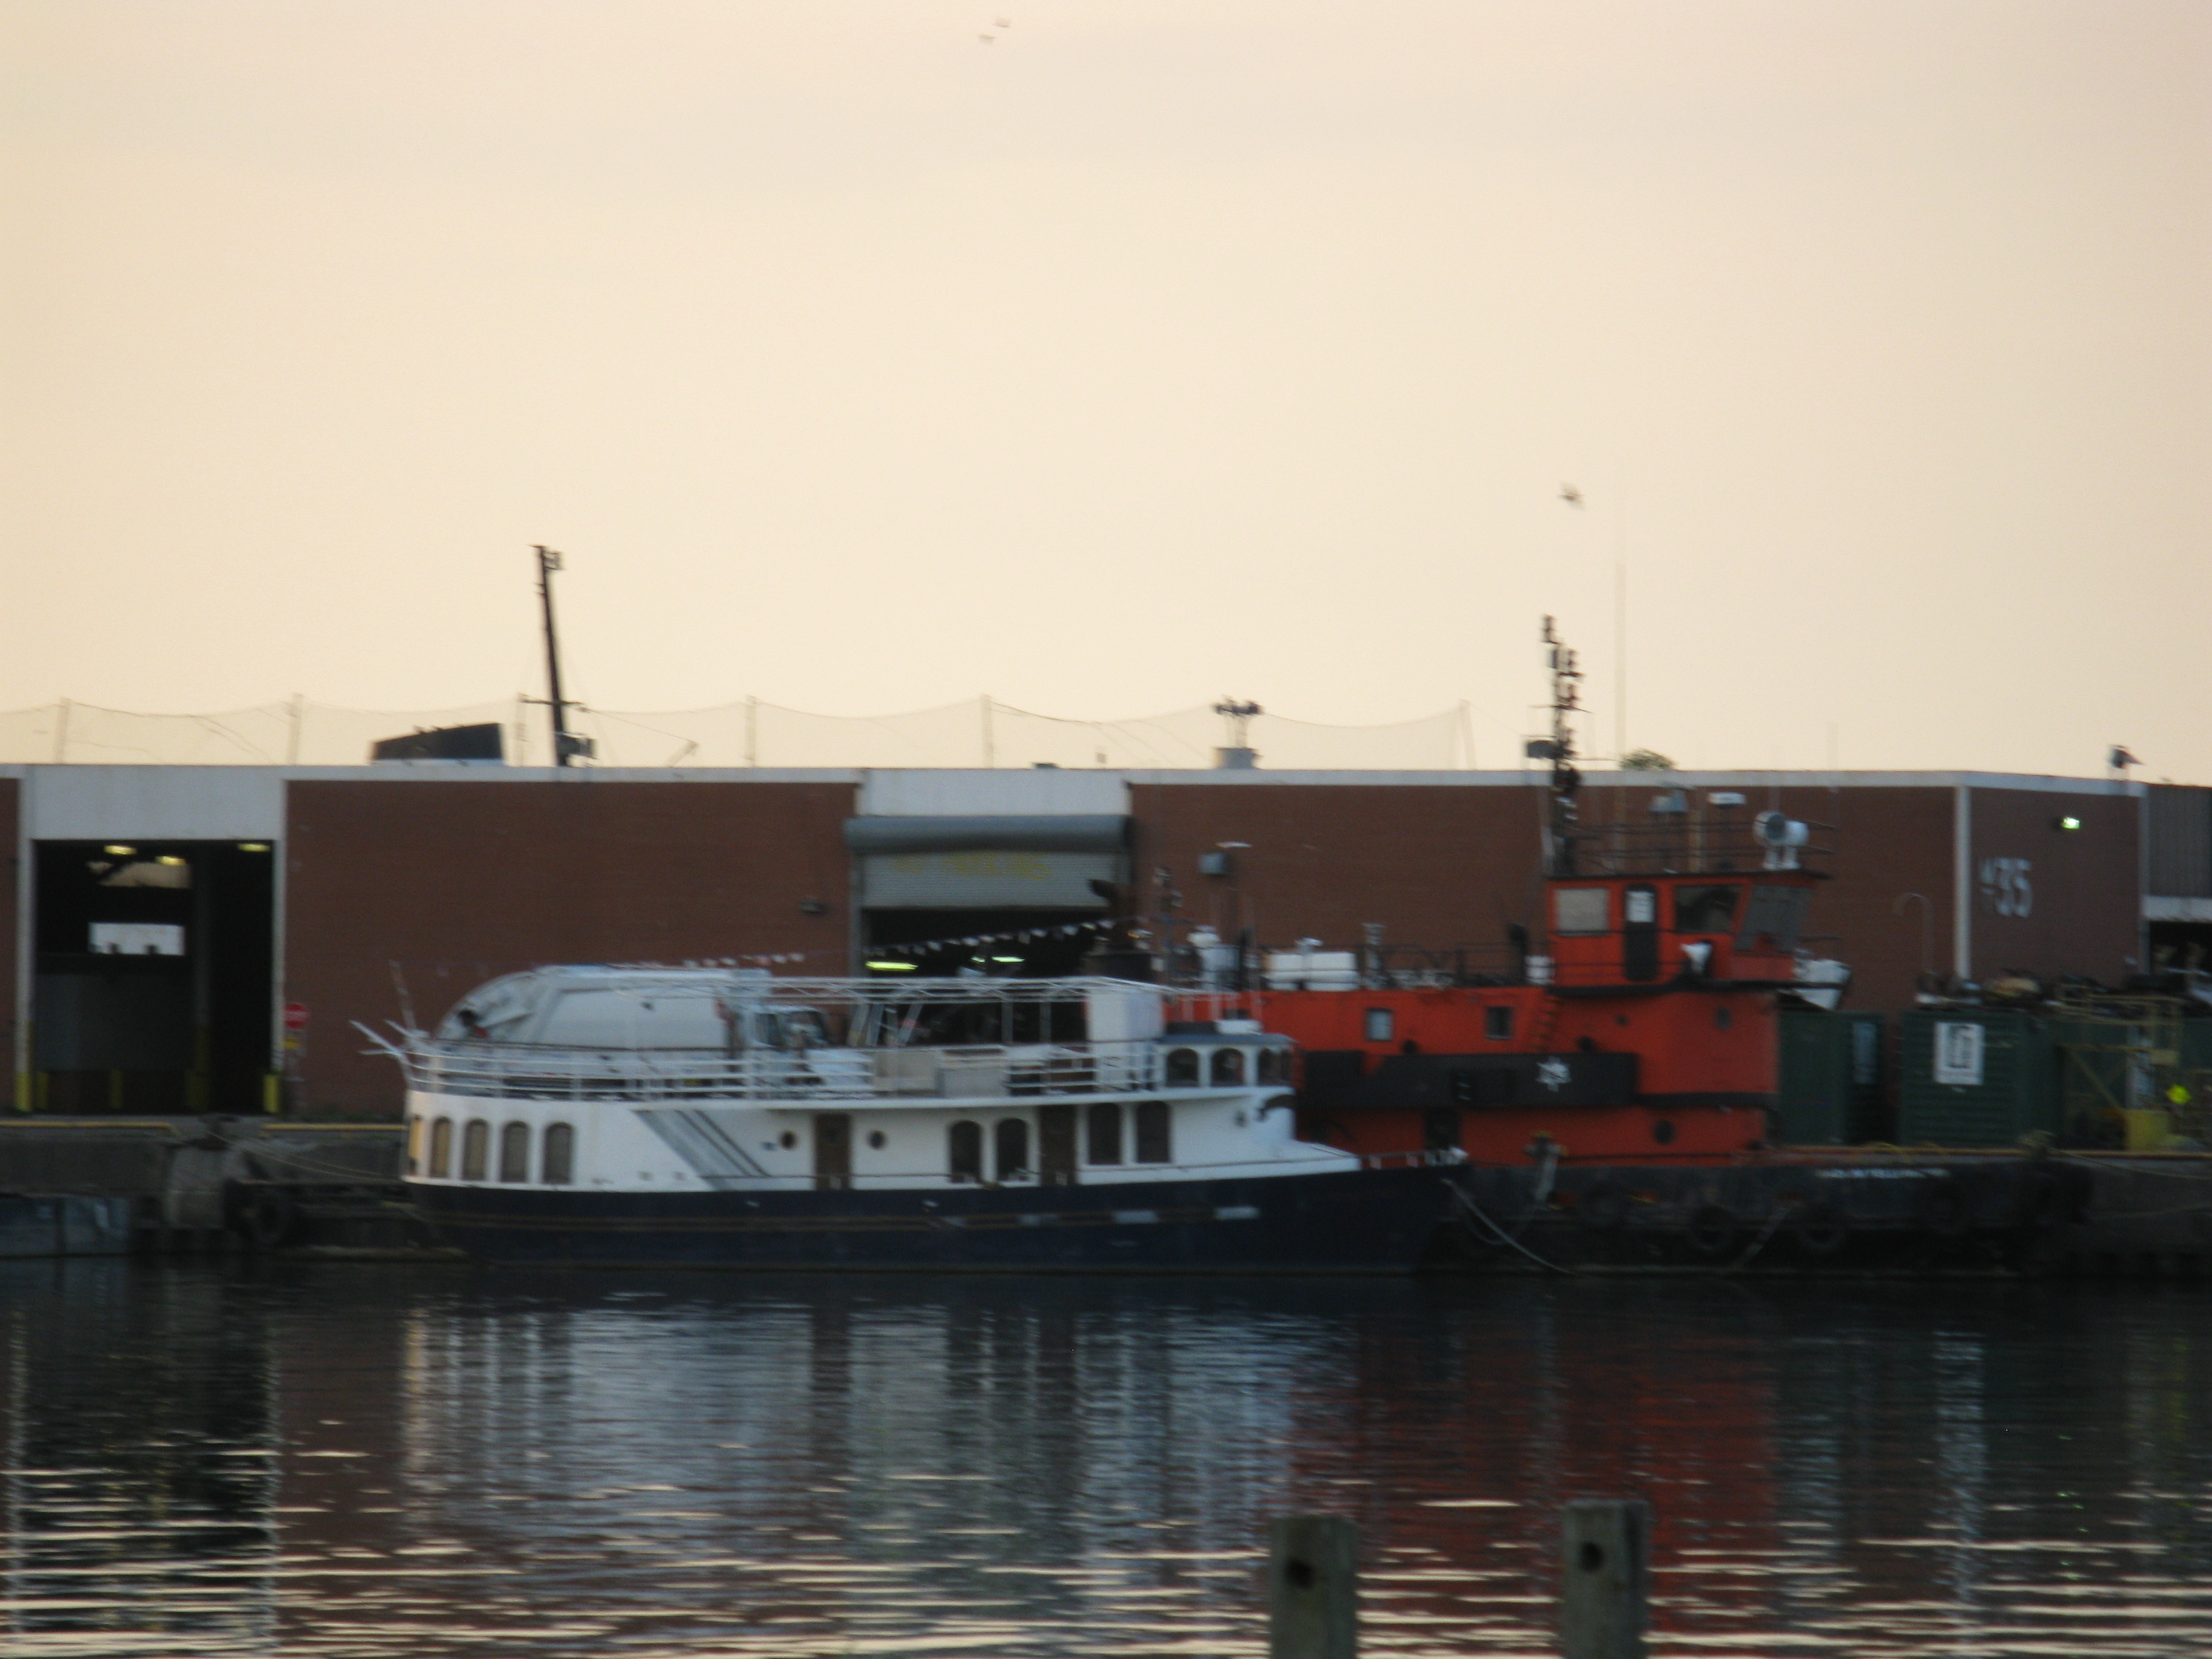 Keating channel 2012 07 06 -ac.jpg, Boat, Outdoor, Ship, Vehicle, HQ Photo